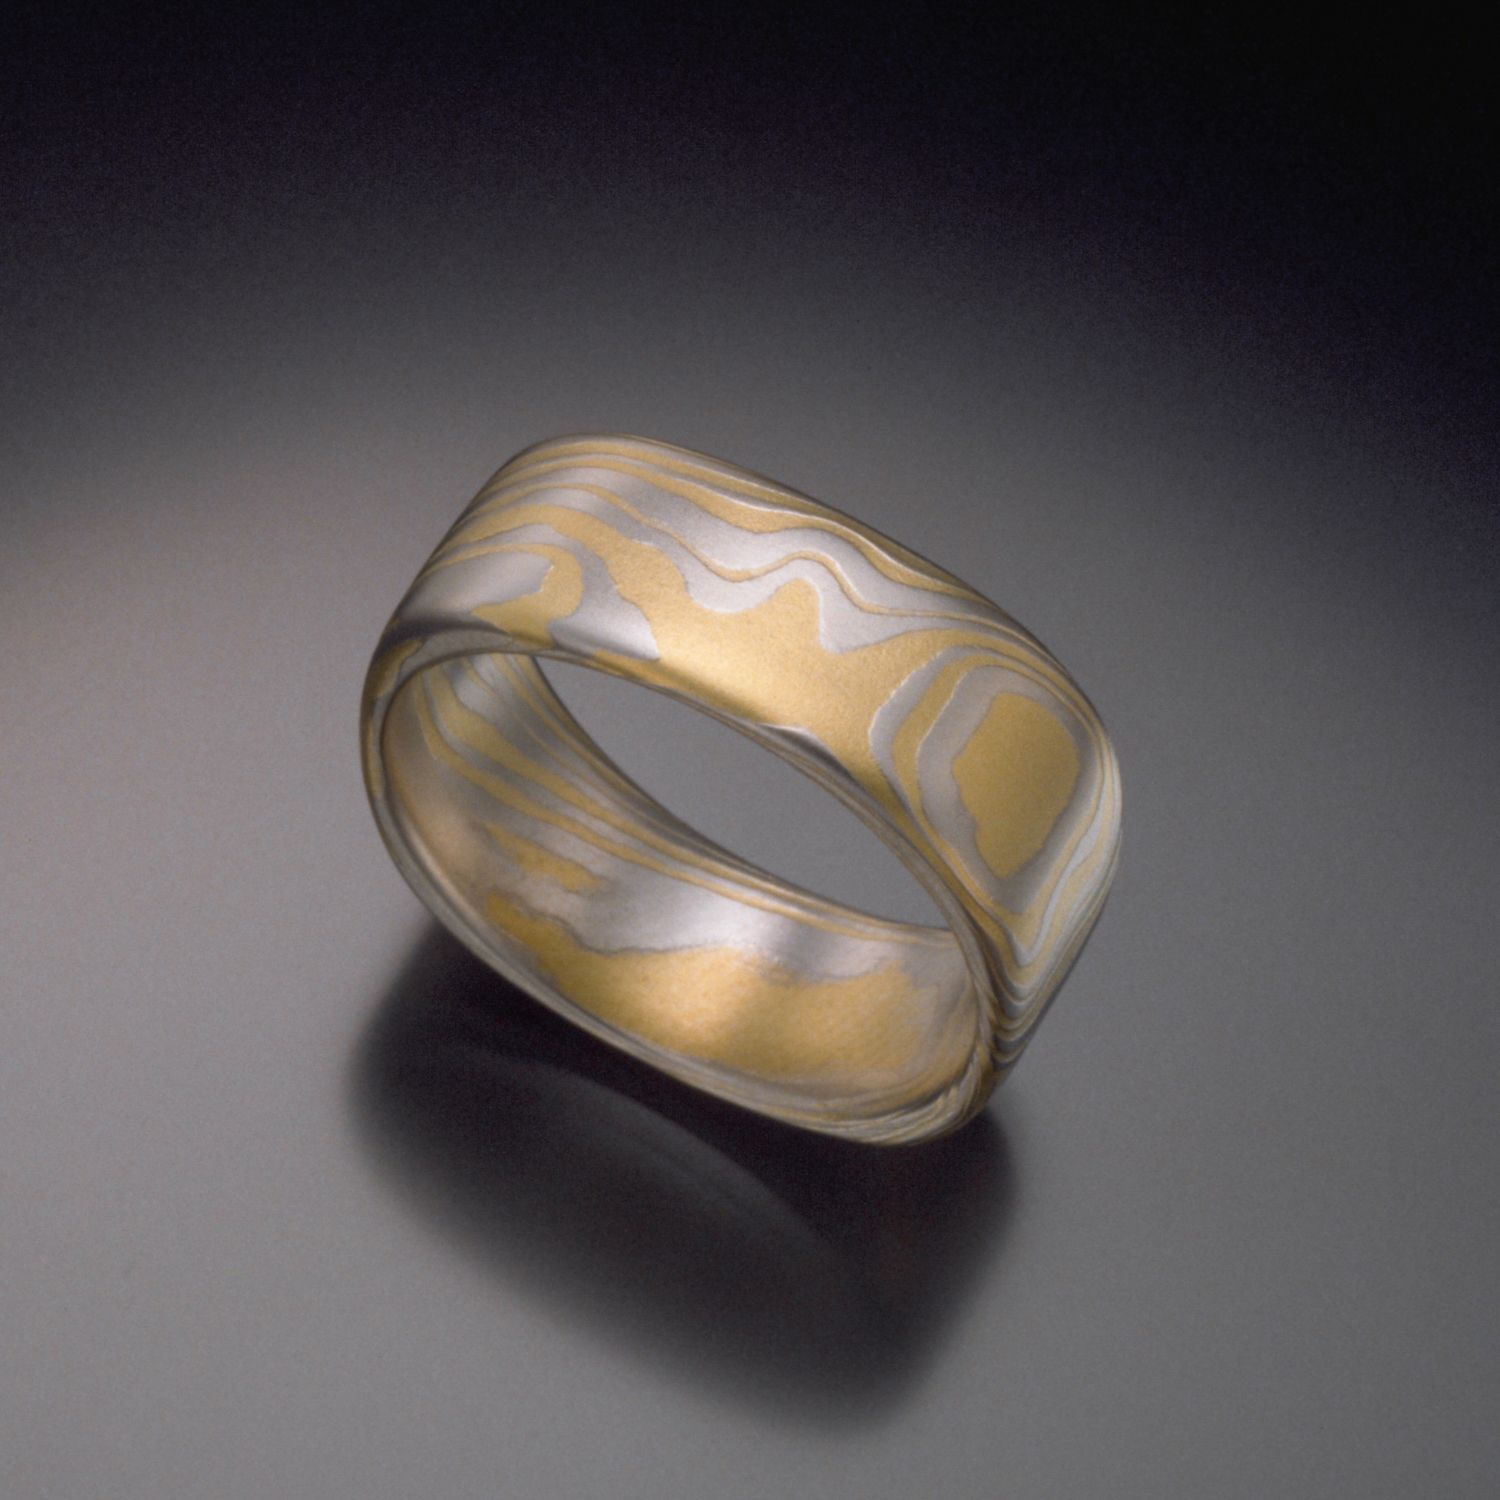 The TERRA SQUARE Platinum And Gold Mokume Gane Wedding Band Is Bold Sophisticated Flowing Organic Patterns Makes It Look Like Was Shaped In